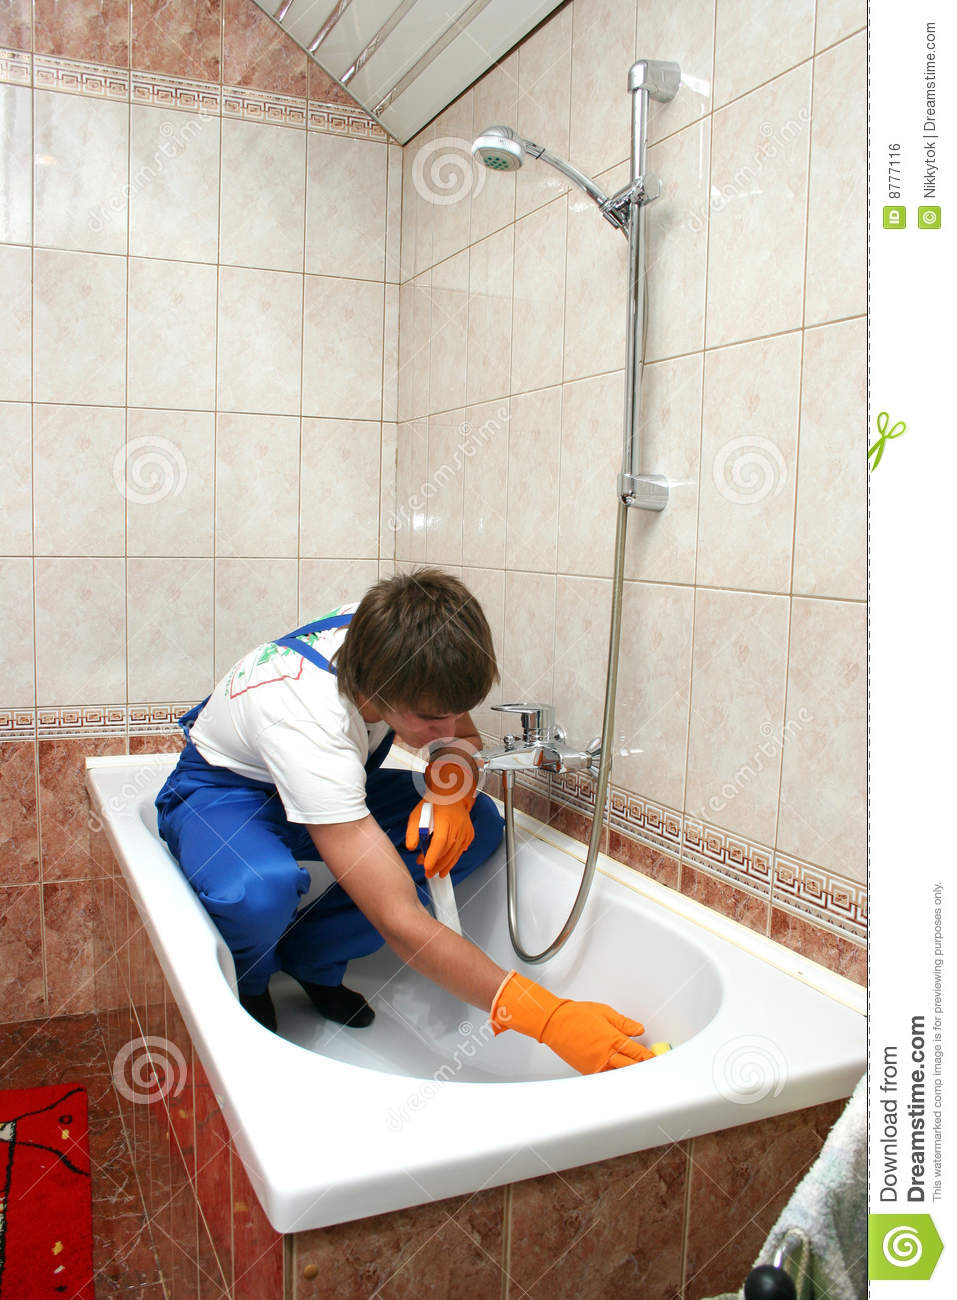 Professional cleaning royalty free stock image image 8777116 for How to professionally clean a bathroom